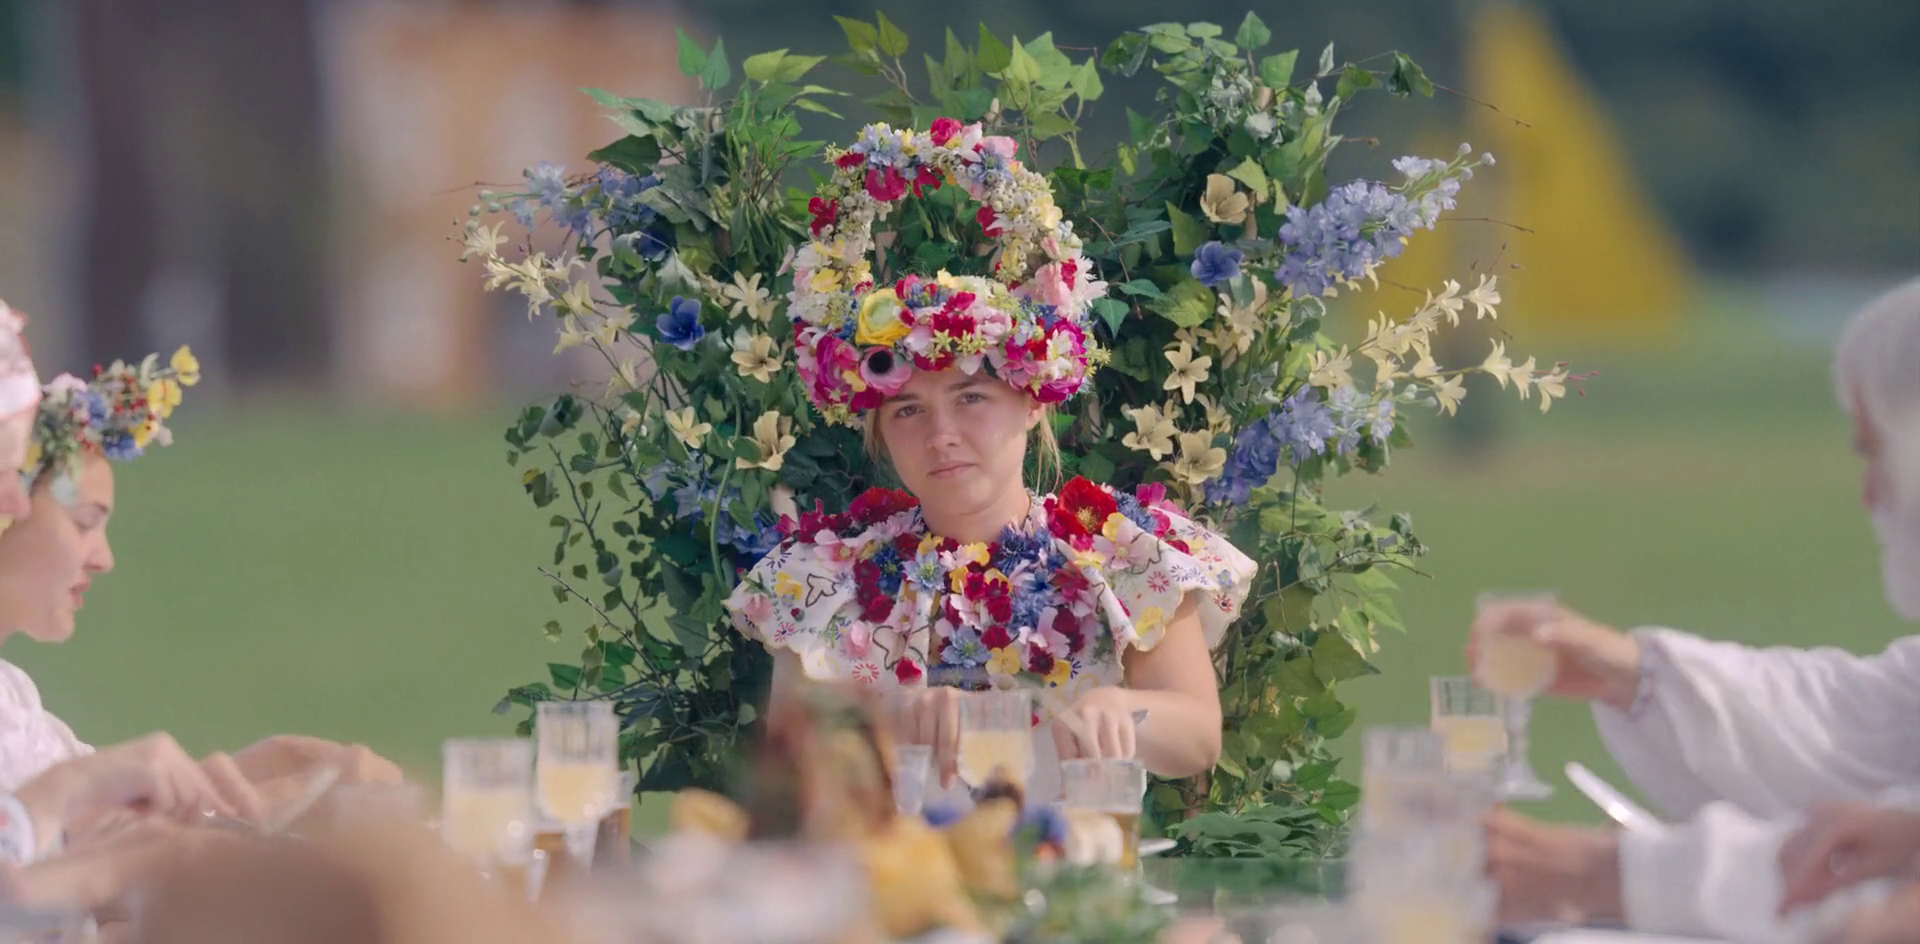 midsommar | Floral wreath, Aesthetic pictures, Floral